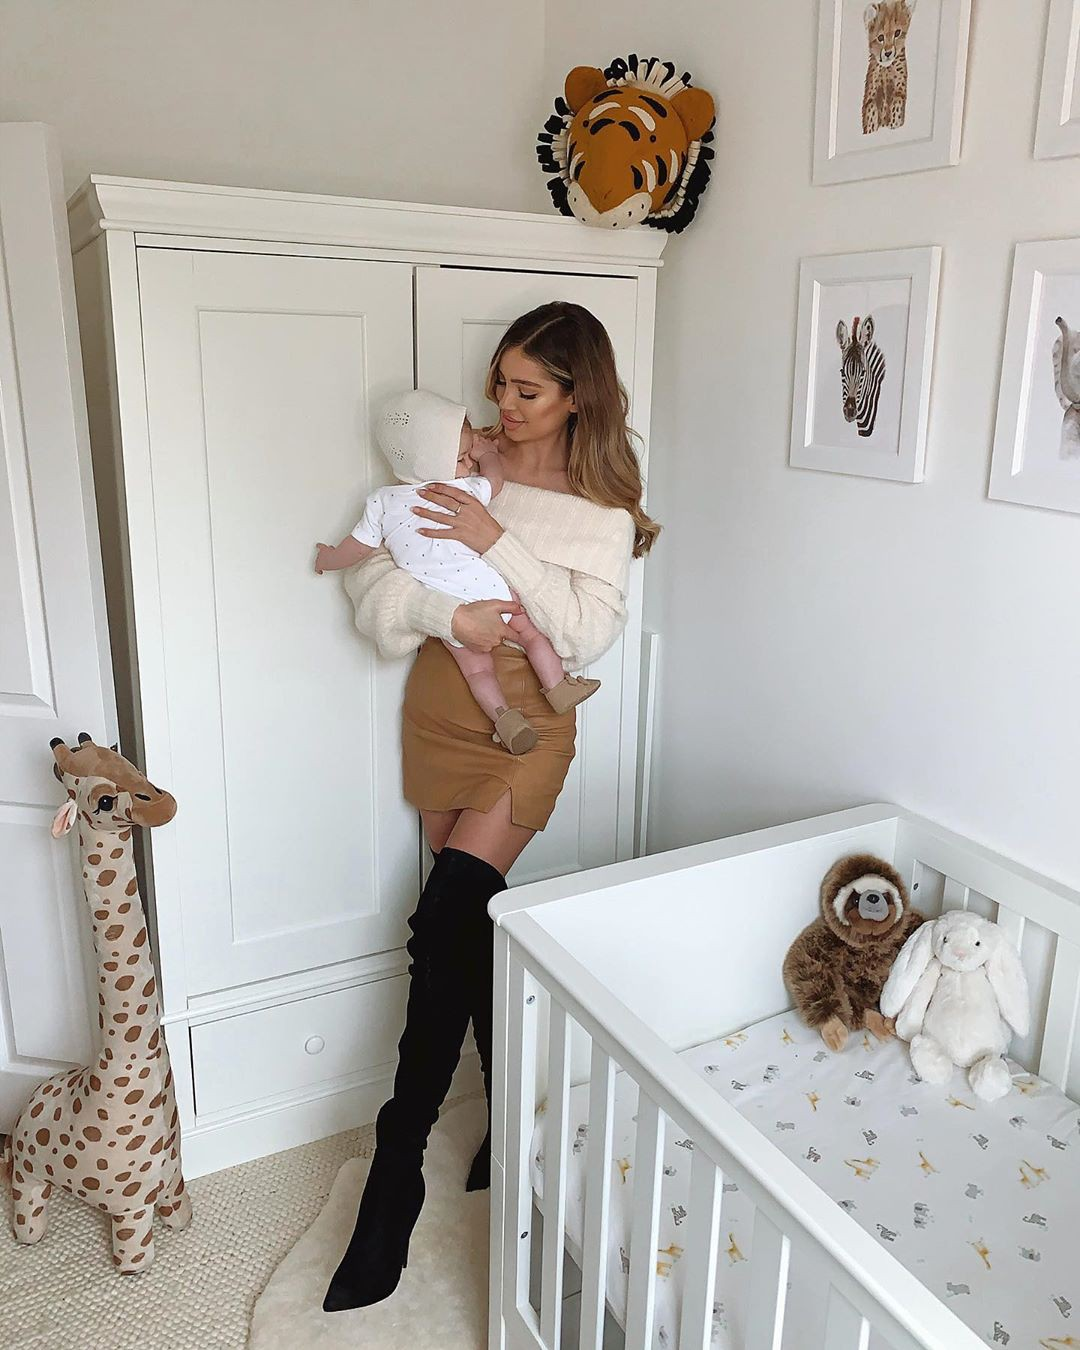 white outfits for girls with fur stocking, tights, fur